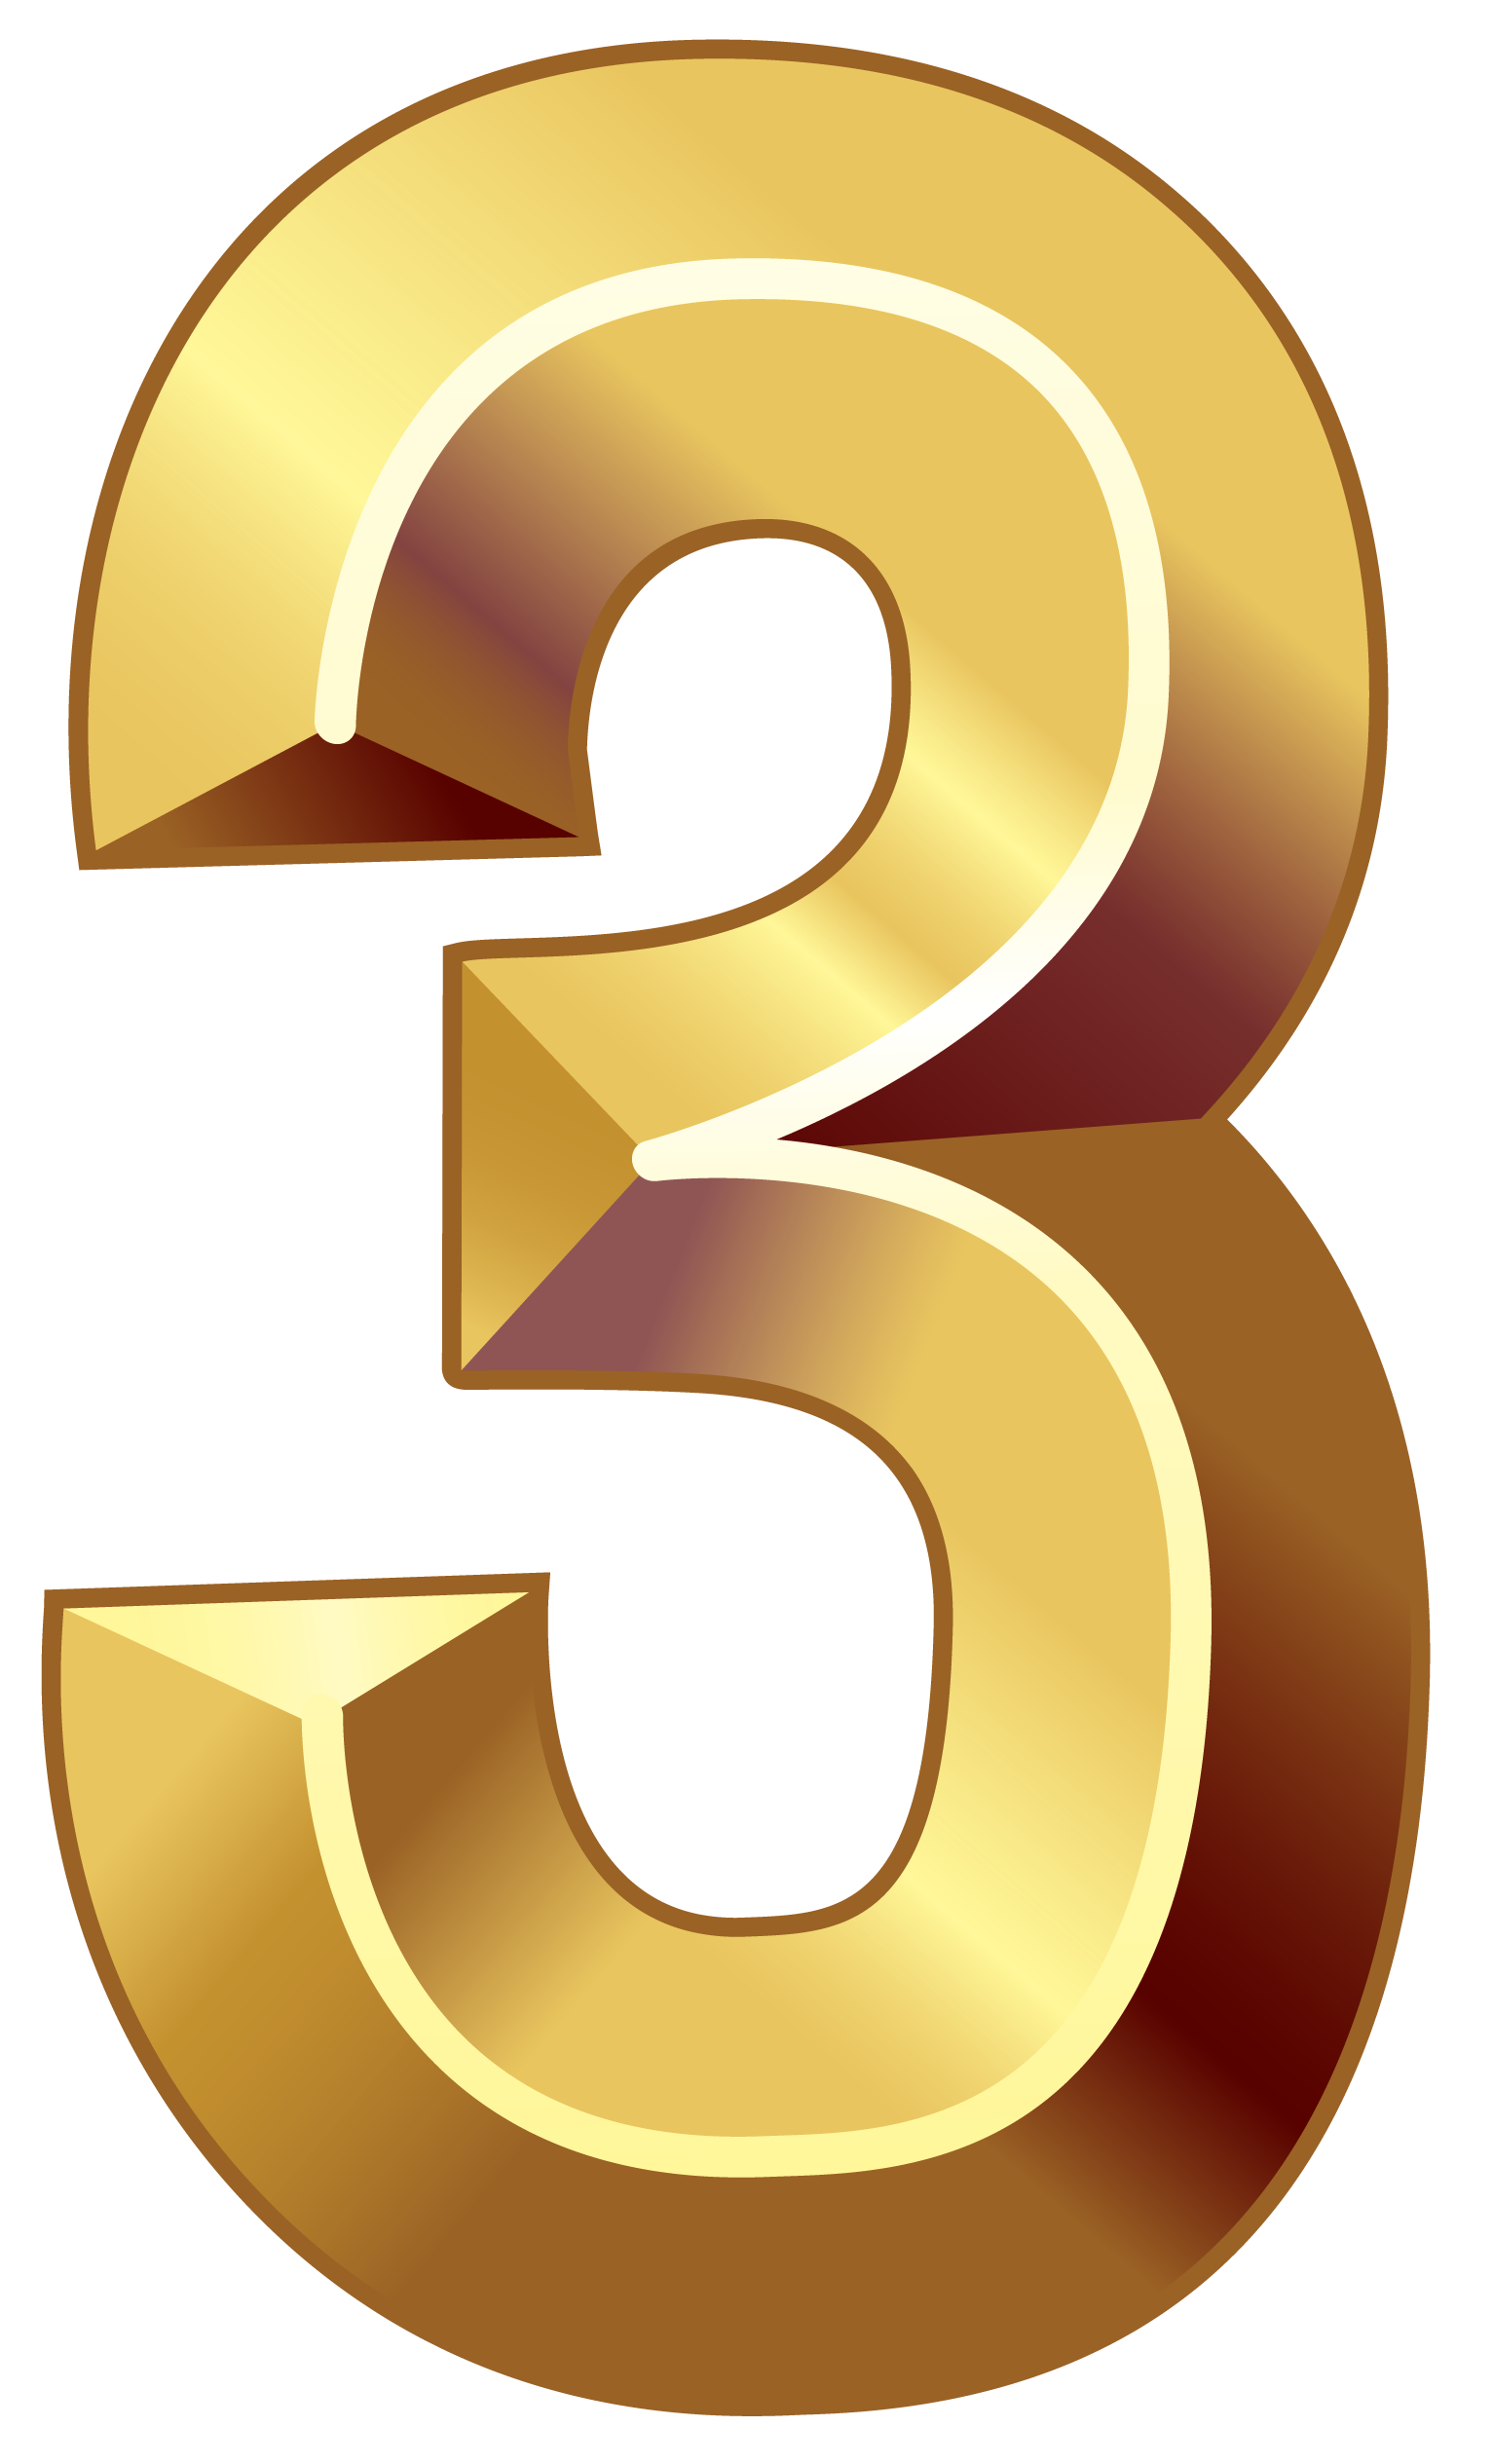 Gold number png image. Clipart numbers three